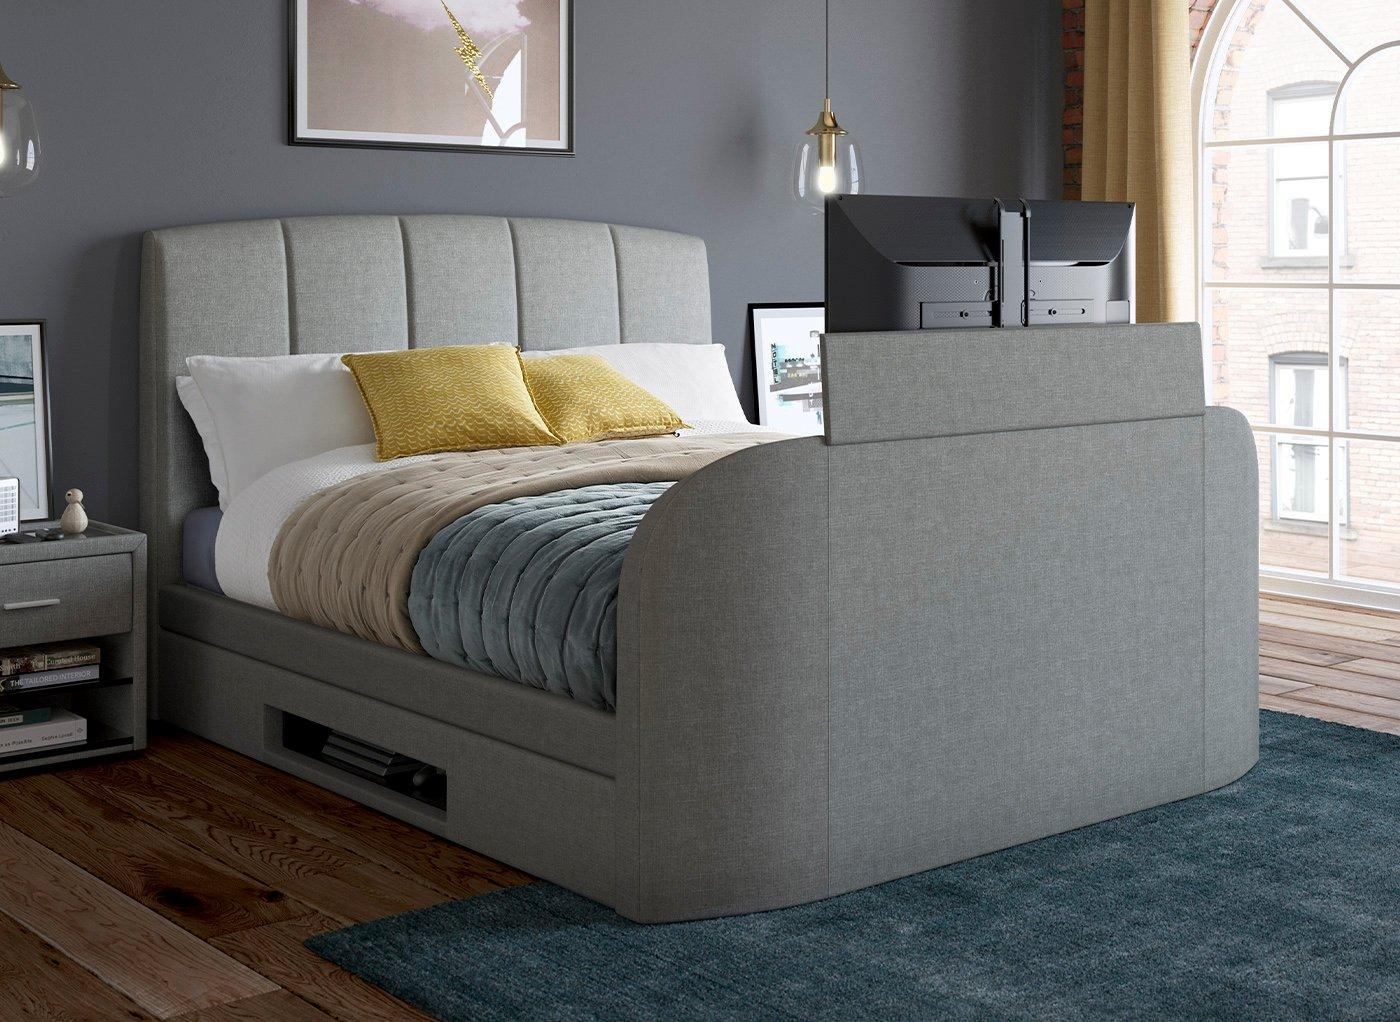 Seoul Bed Frame with 32